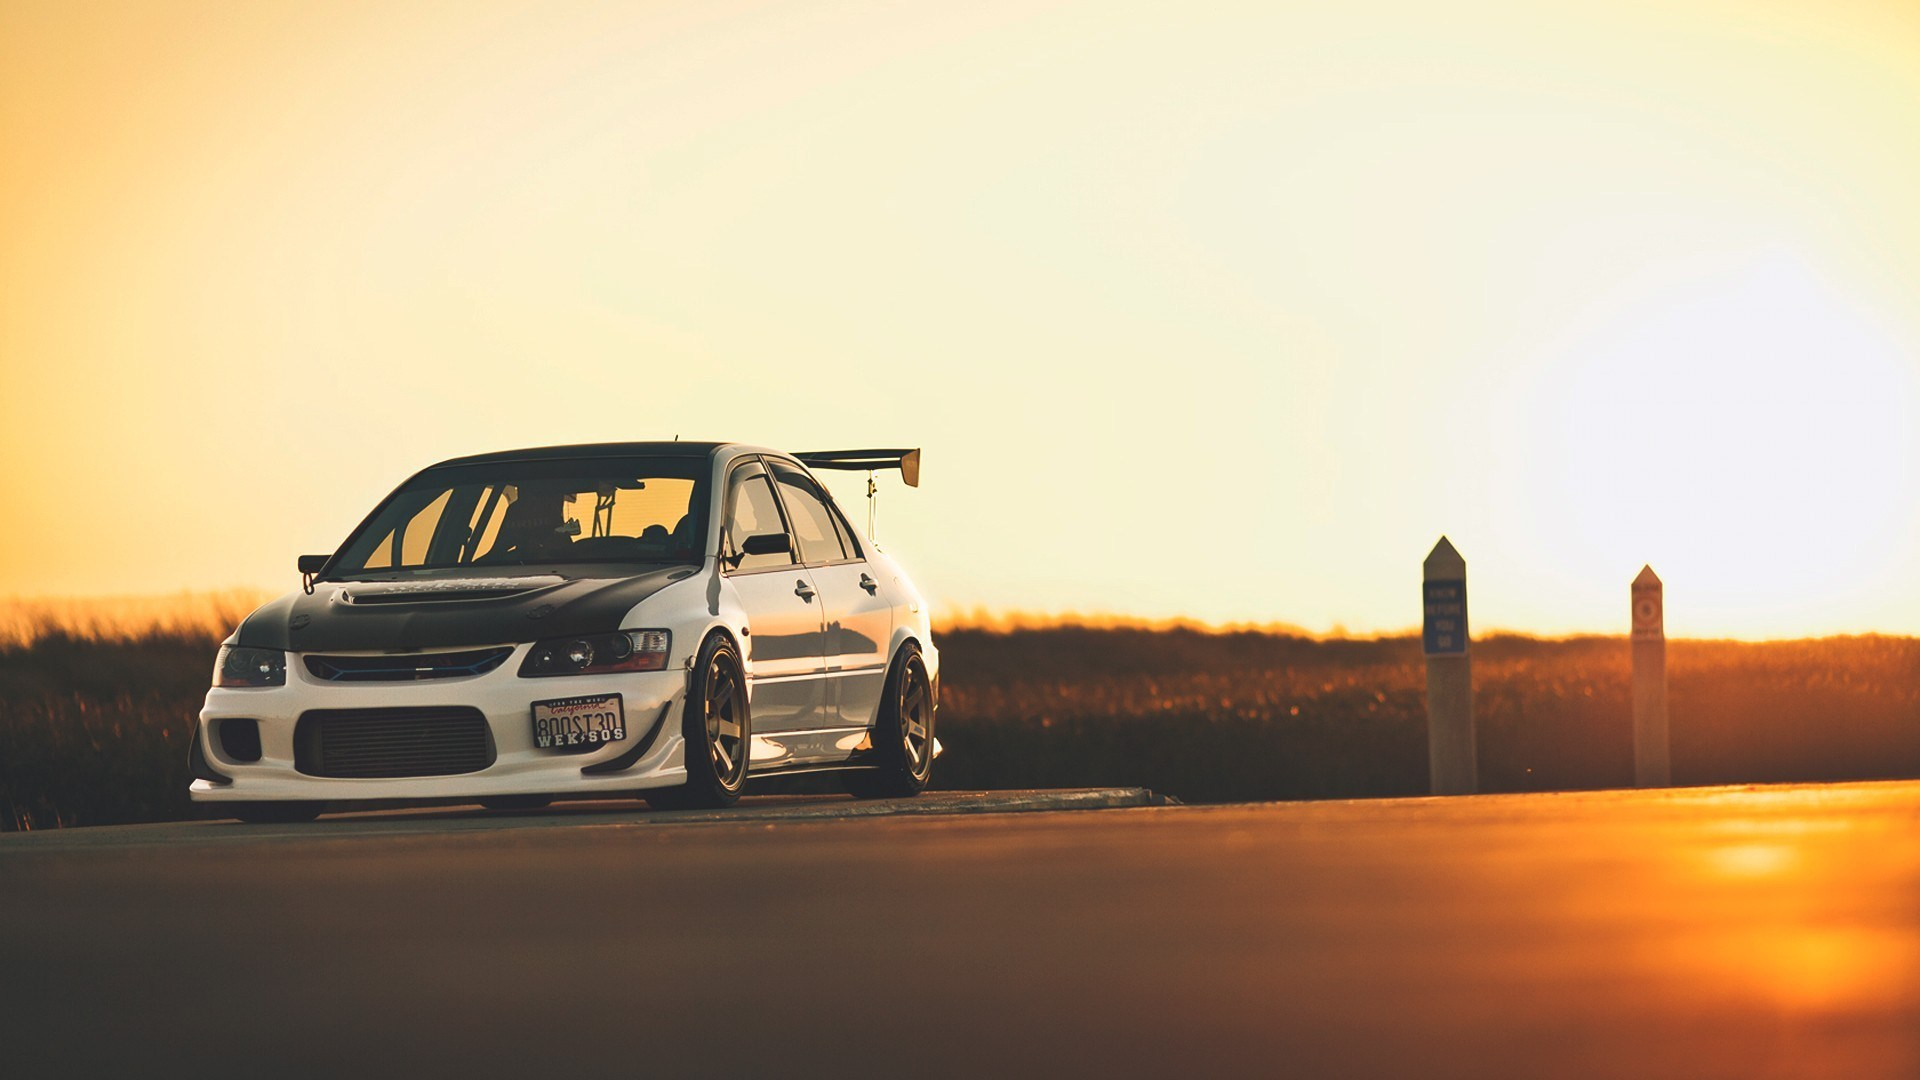 evo 9 wallpaper download